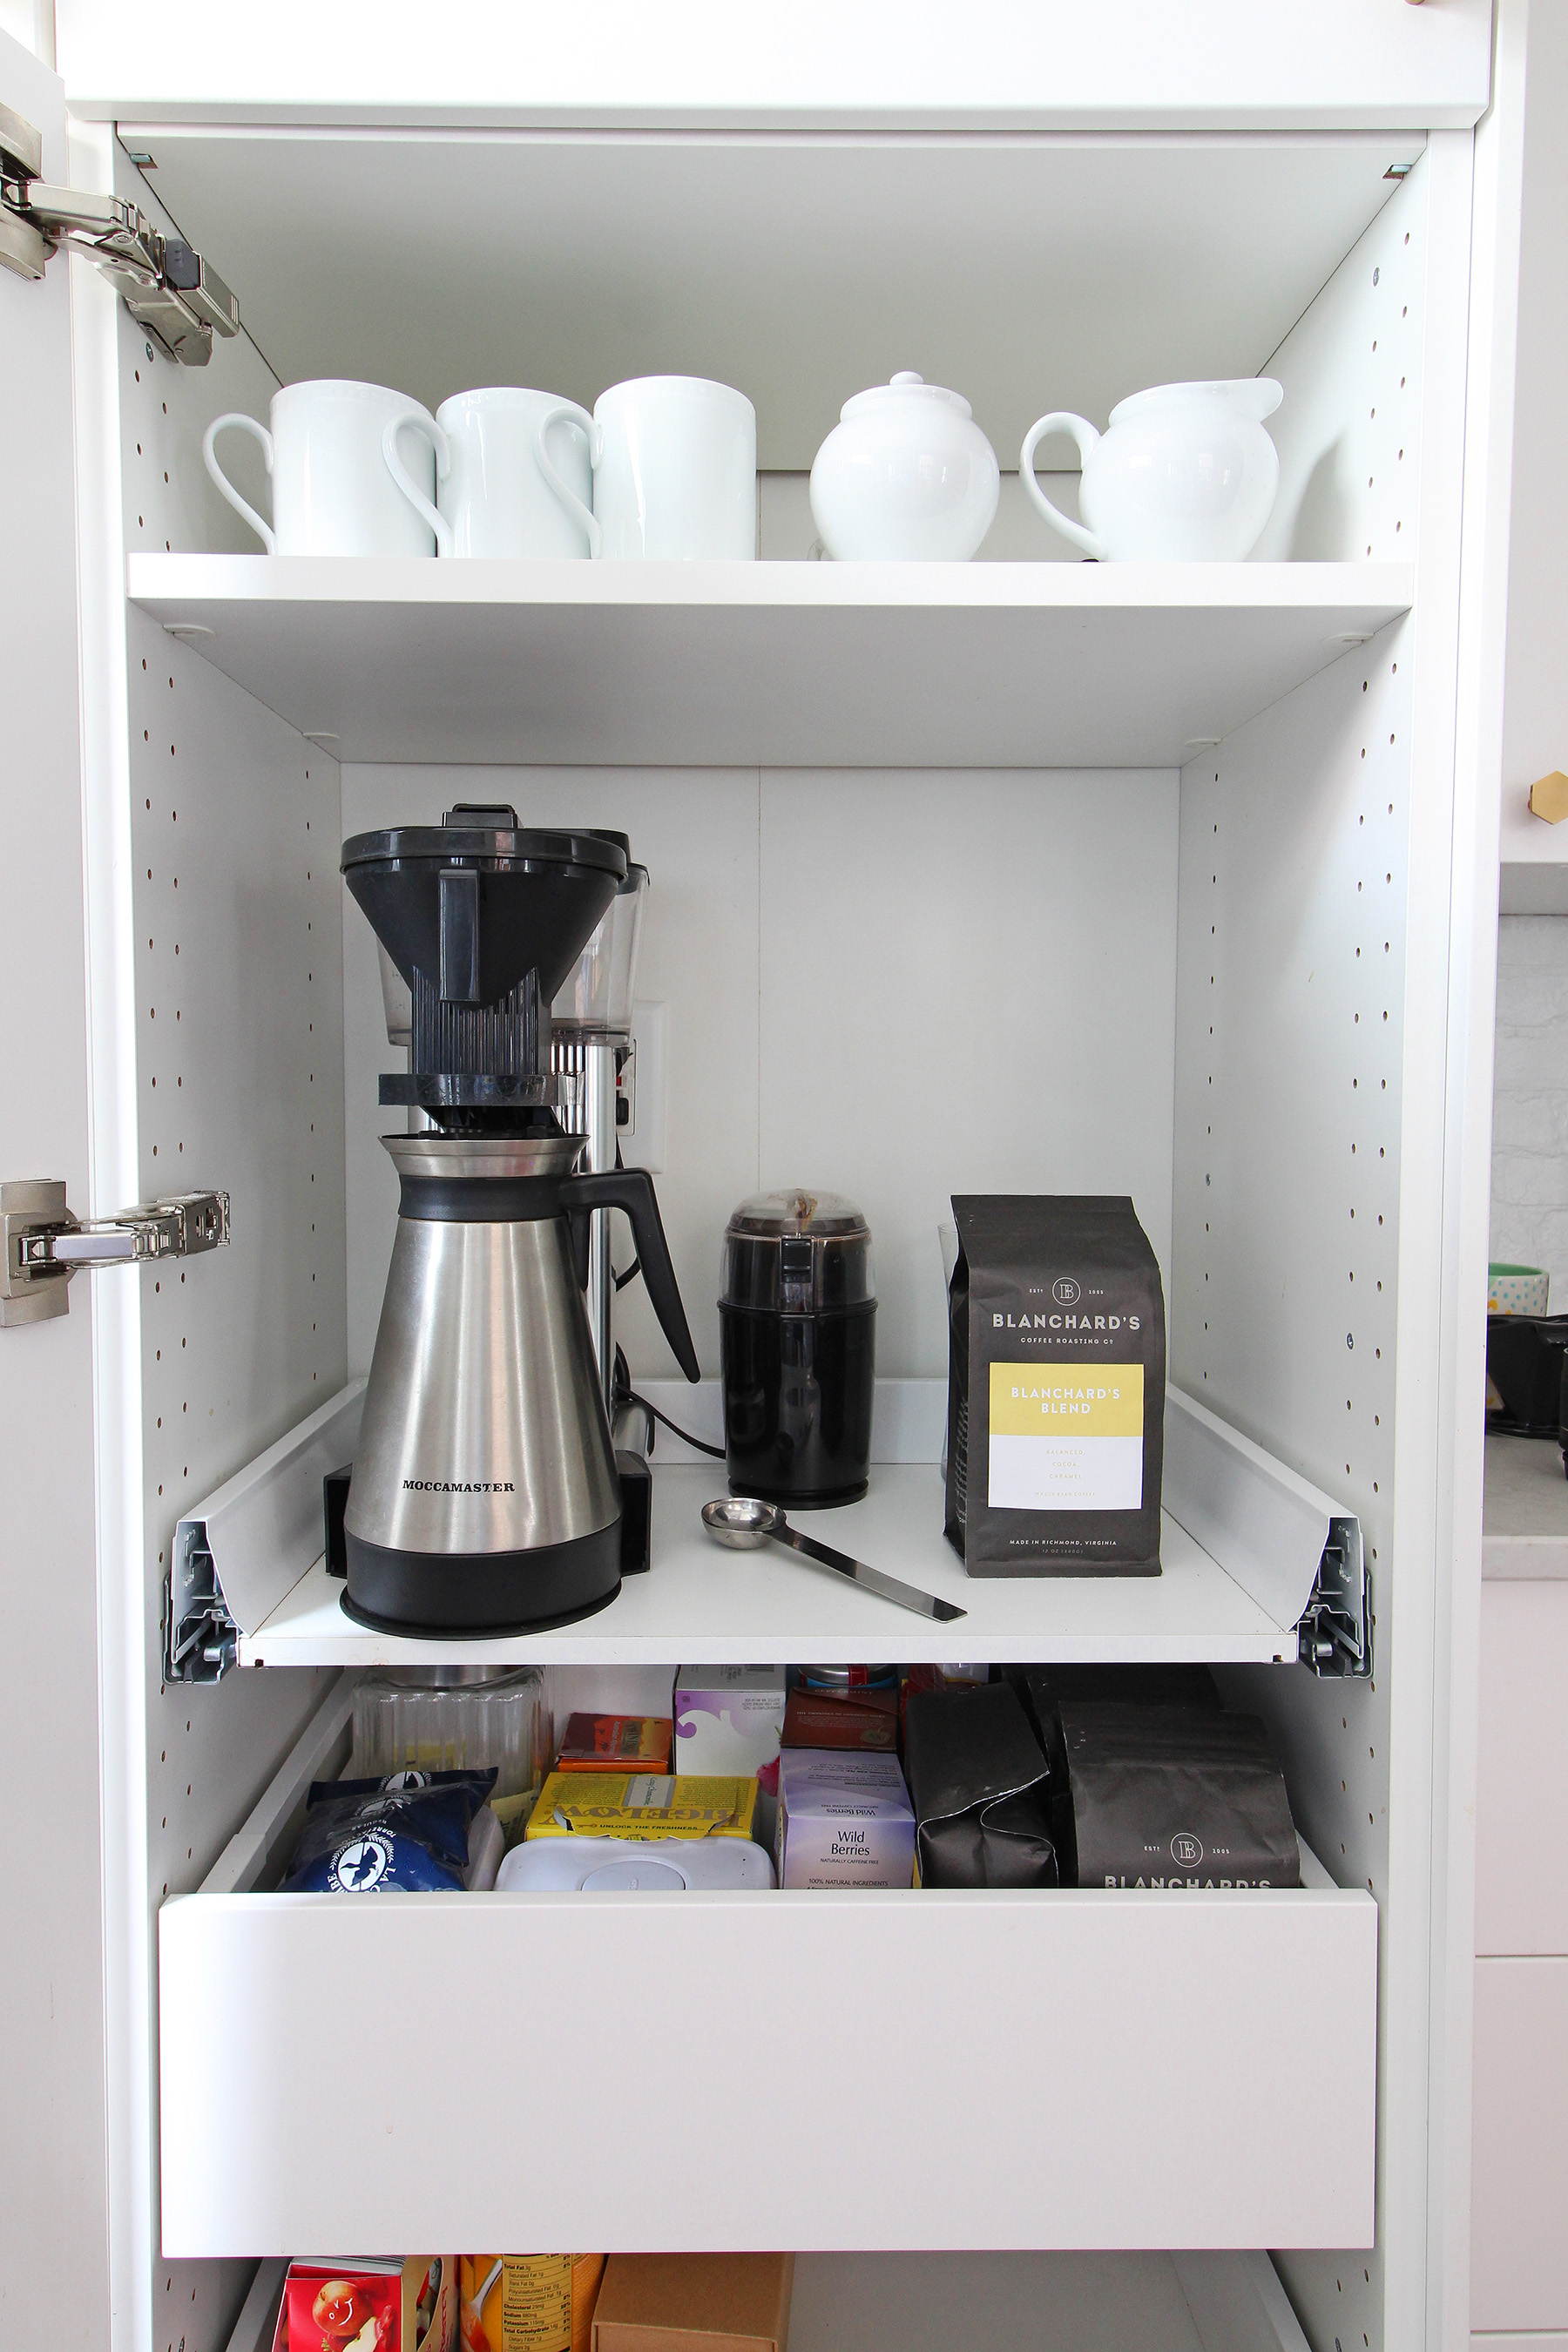 Read my review of our modern white kitchen renovation using IKEA cabinets, Caesarstone countertops, and gray tile floors two years after we renovated. We love our coffee station that's hiding in our tall pantry. You can pull out the drawer to add water and brew without worrying about it steaming up!